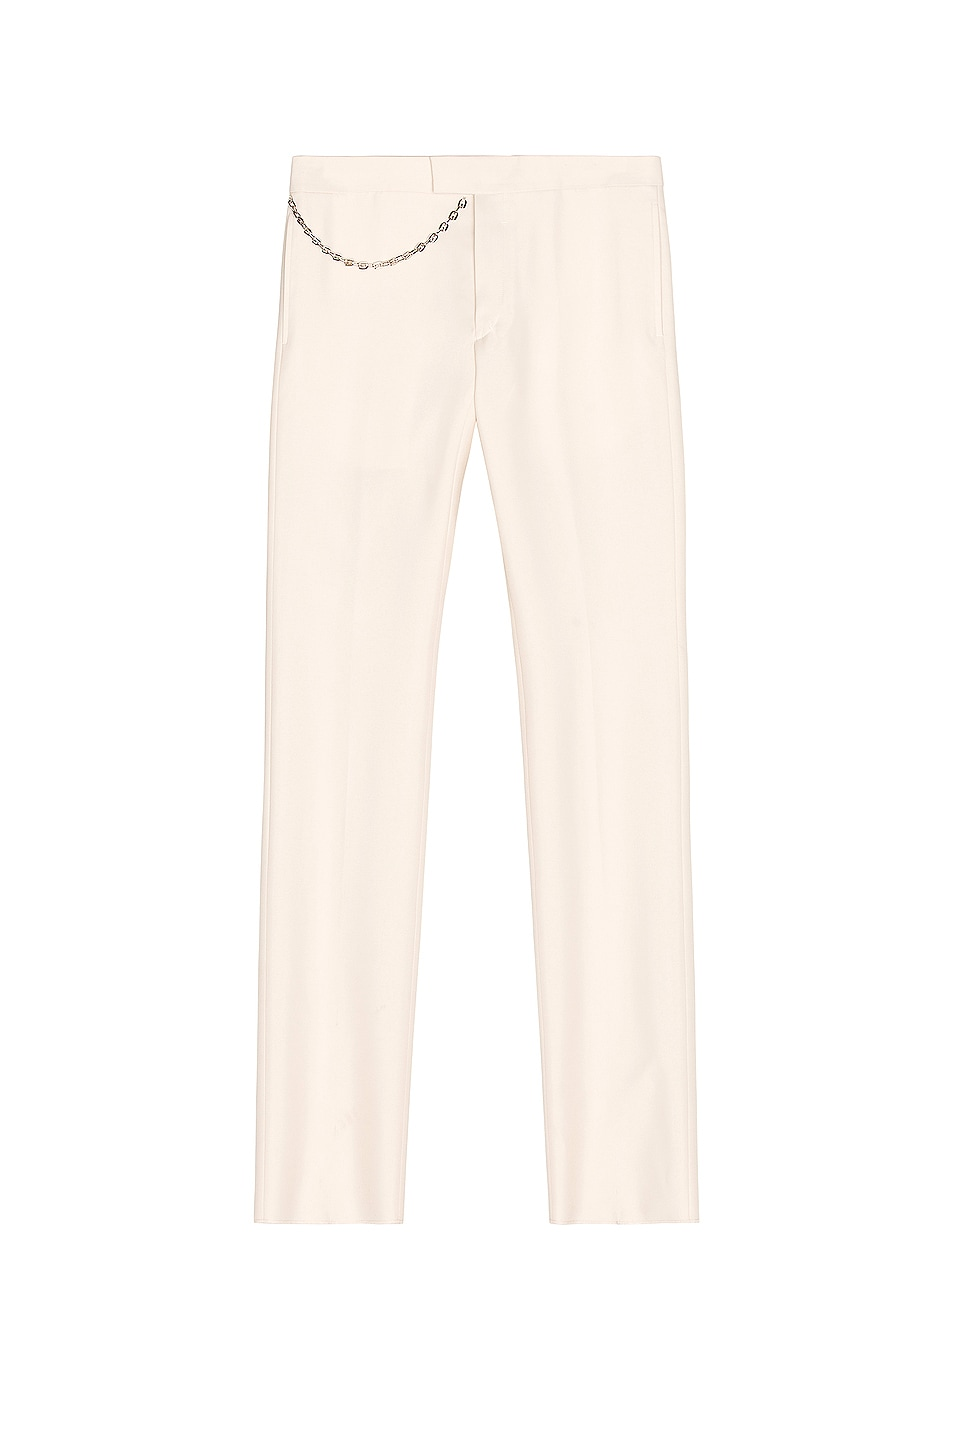 Givenchy Dry Wool Trousers